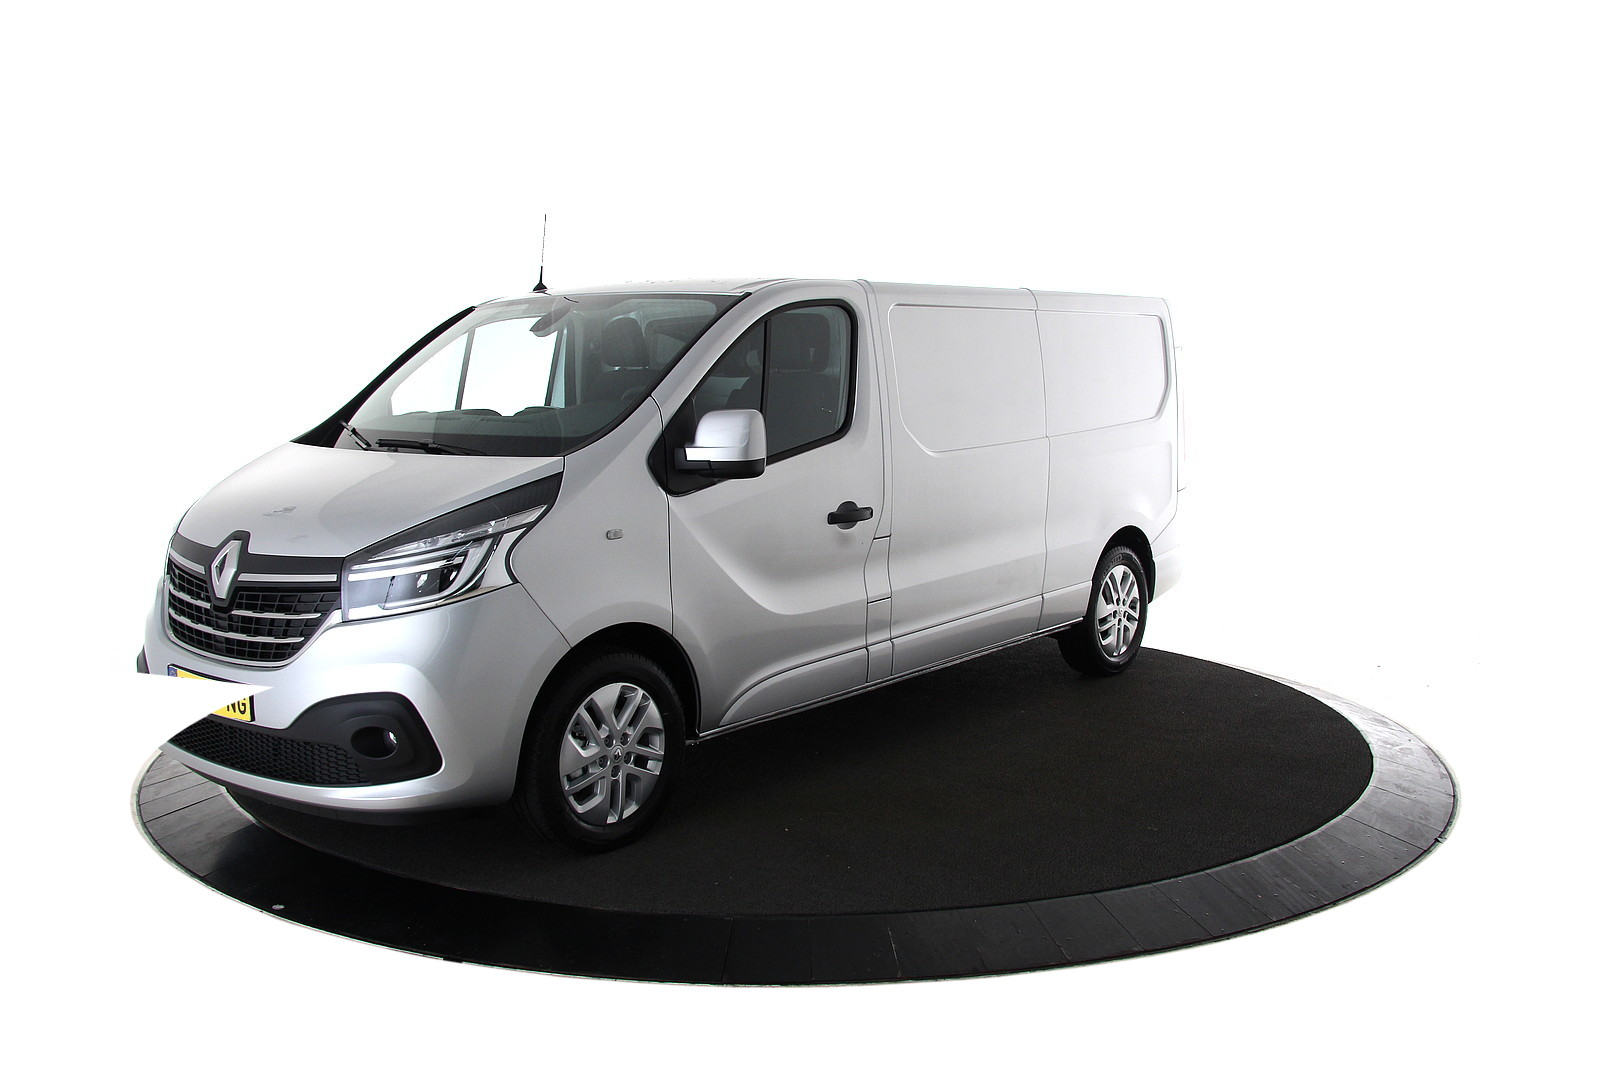 Renault Trafic 2.0 dCi 145 PK T29 L2H1 Luxe Automaat